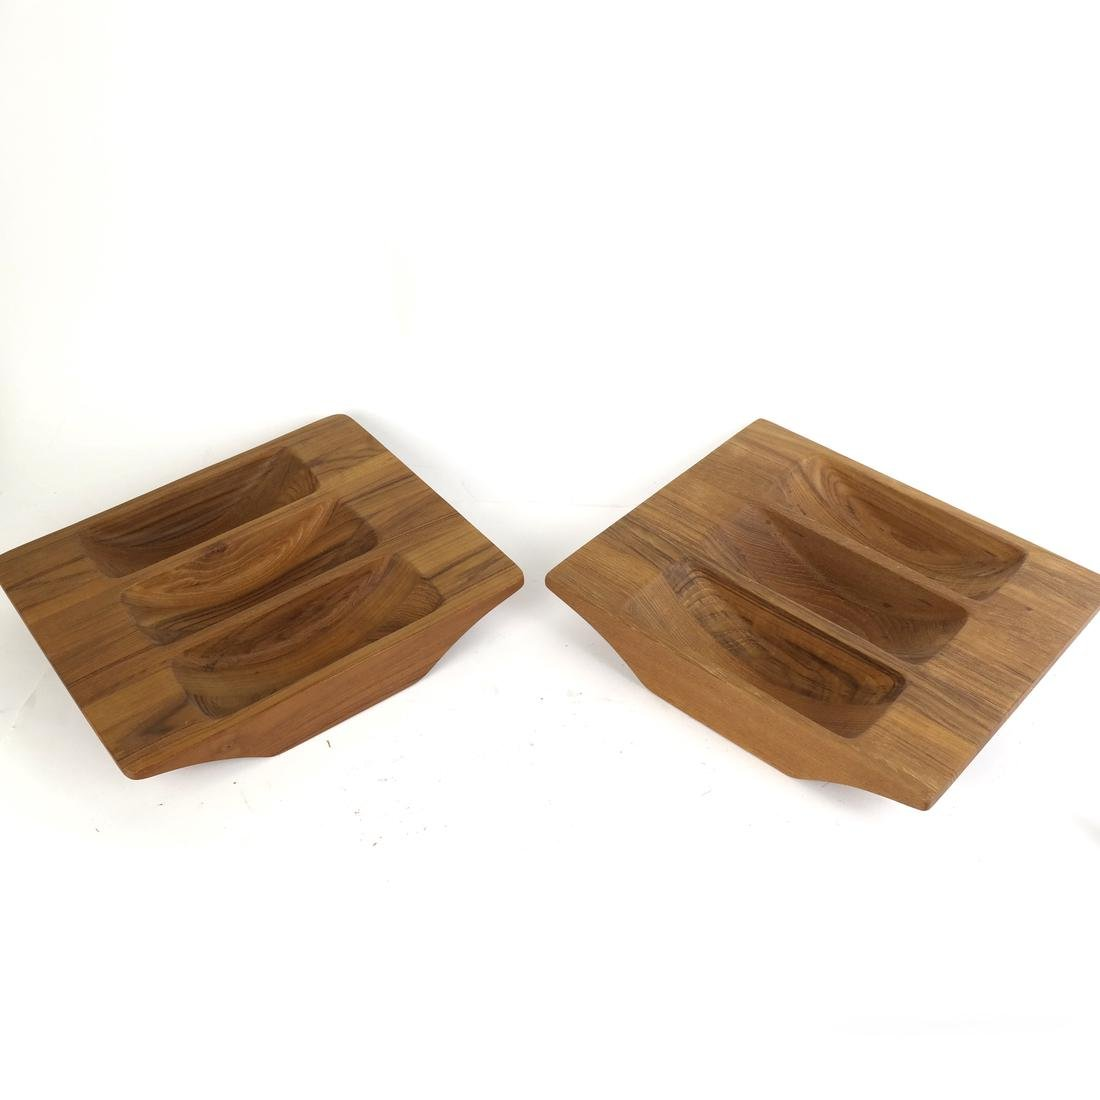 Mostly Danish Wood Serving Pieces - 6